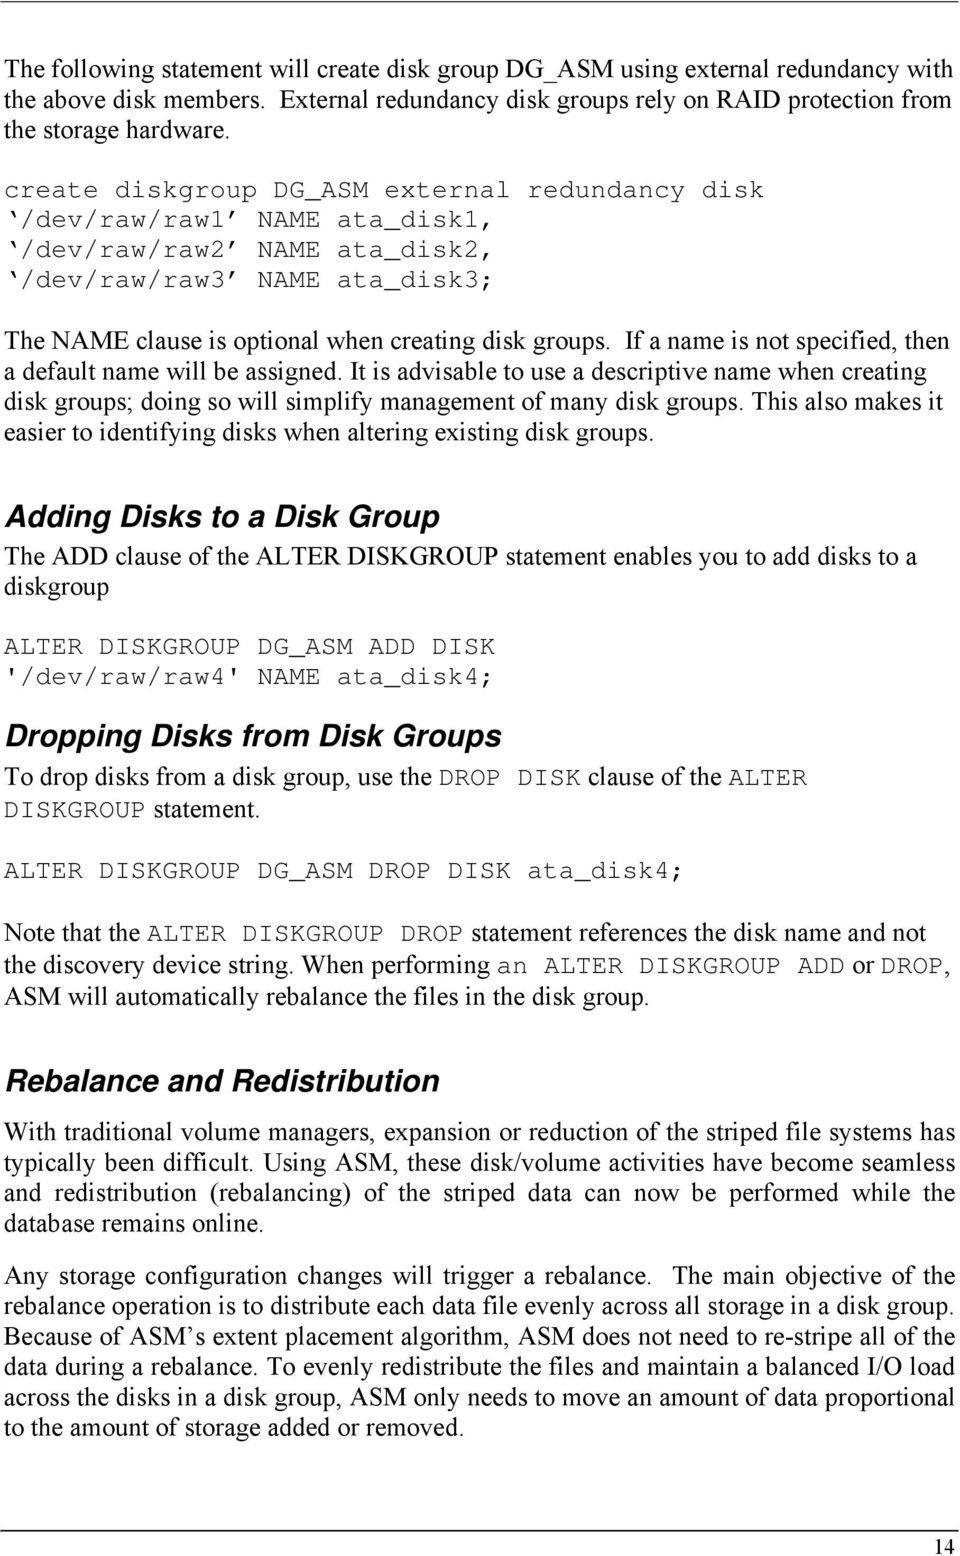 If a name is not specified, then a default name will be assigned. It is advisable to use a descriptive name when creating disk groups; doing so will simplify management of many disk groups.